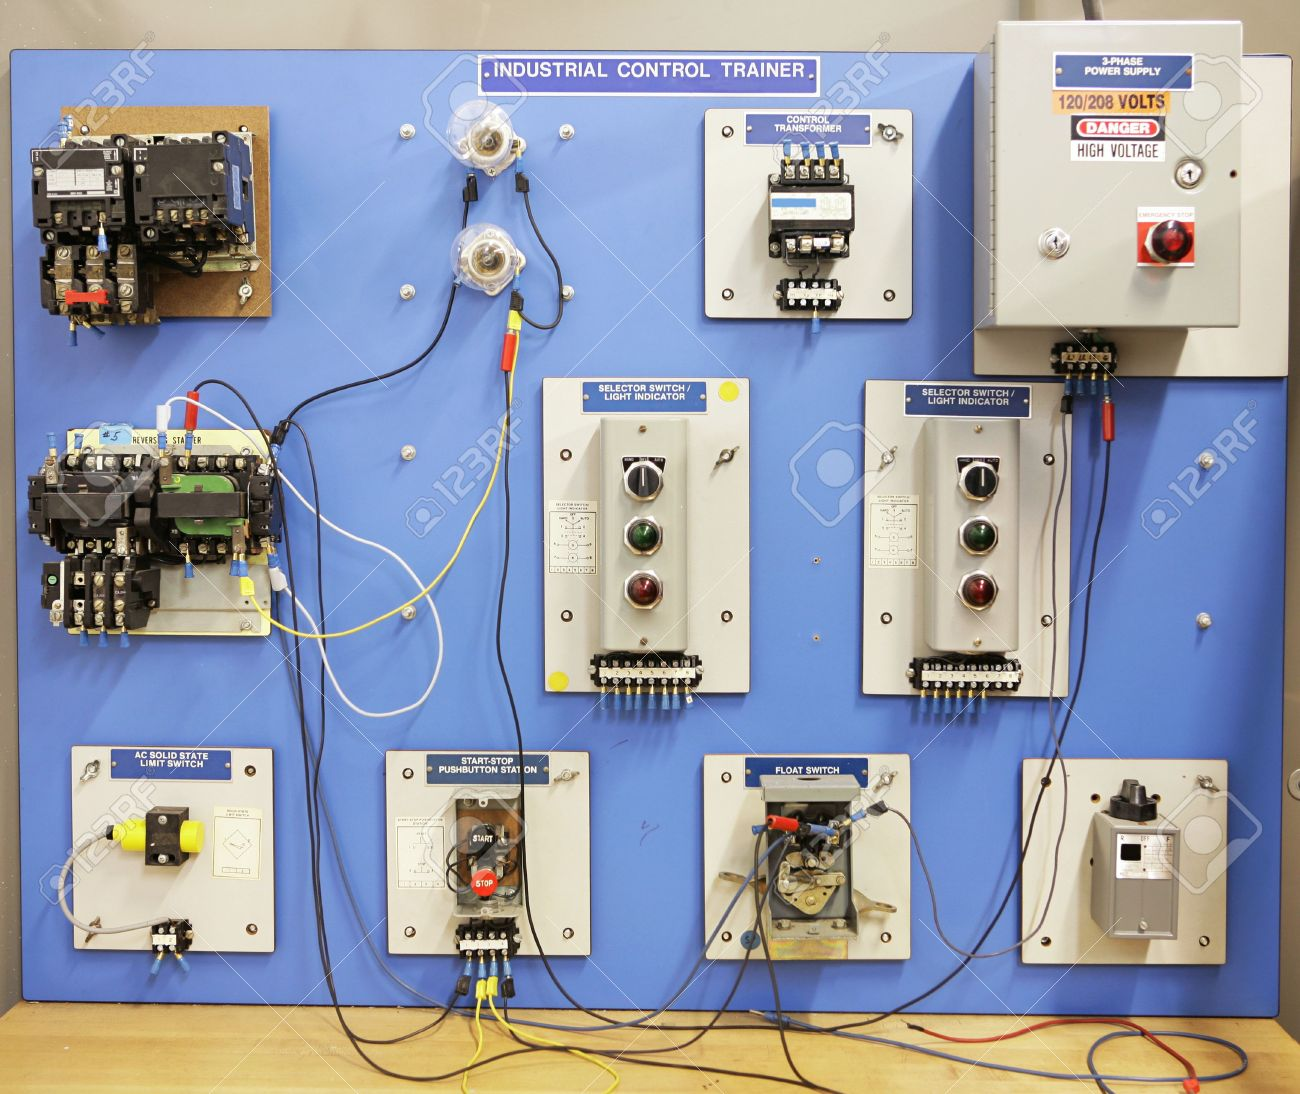 Comfortable Electrical Panel Board Wiring Gallery And 2163113 An Industrial Motor Control Training Used